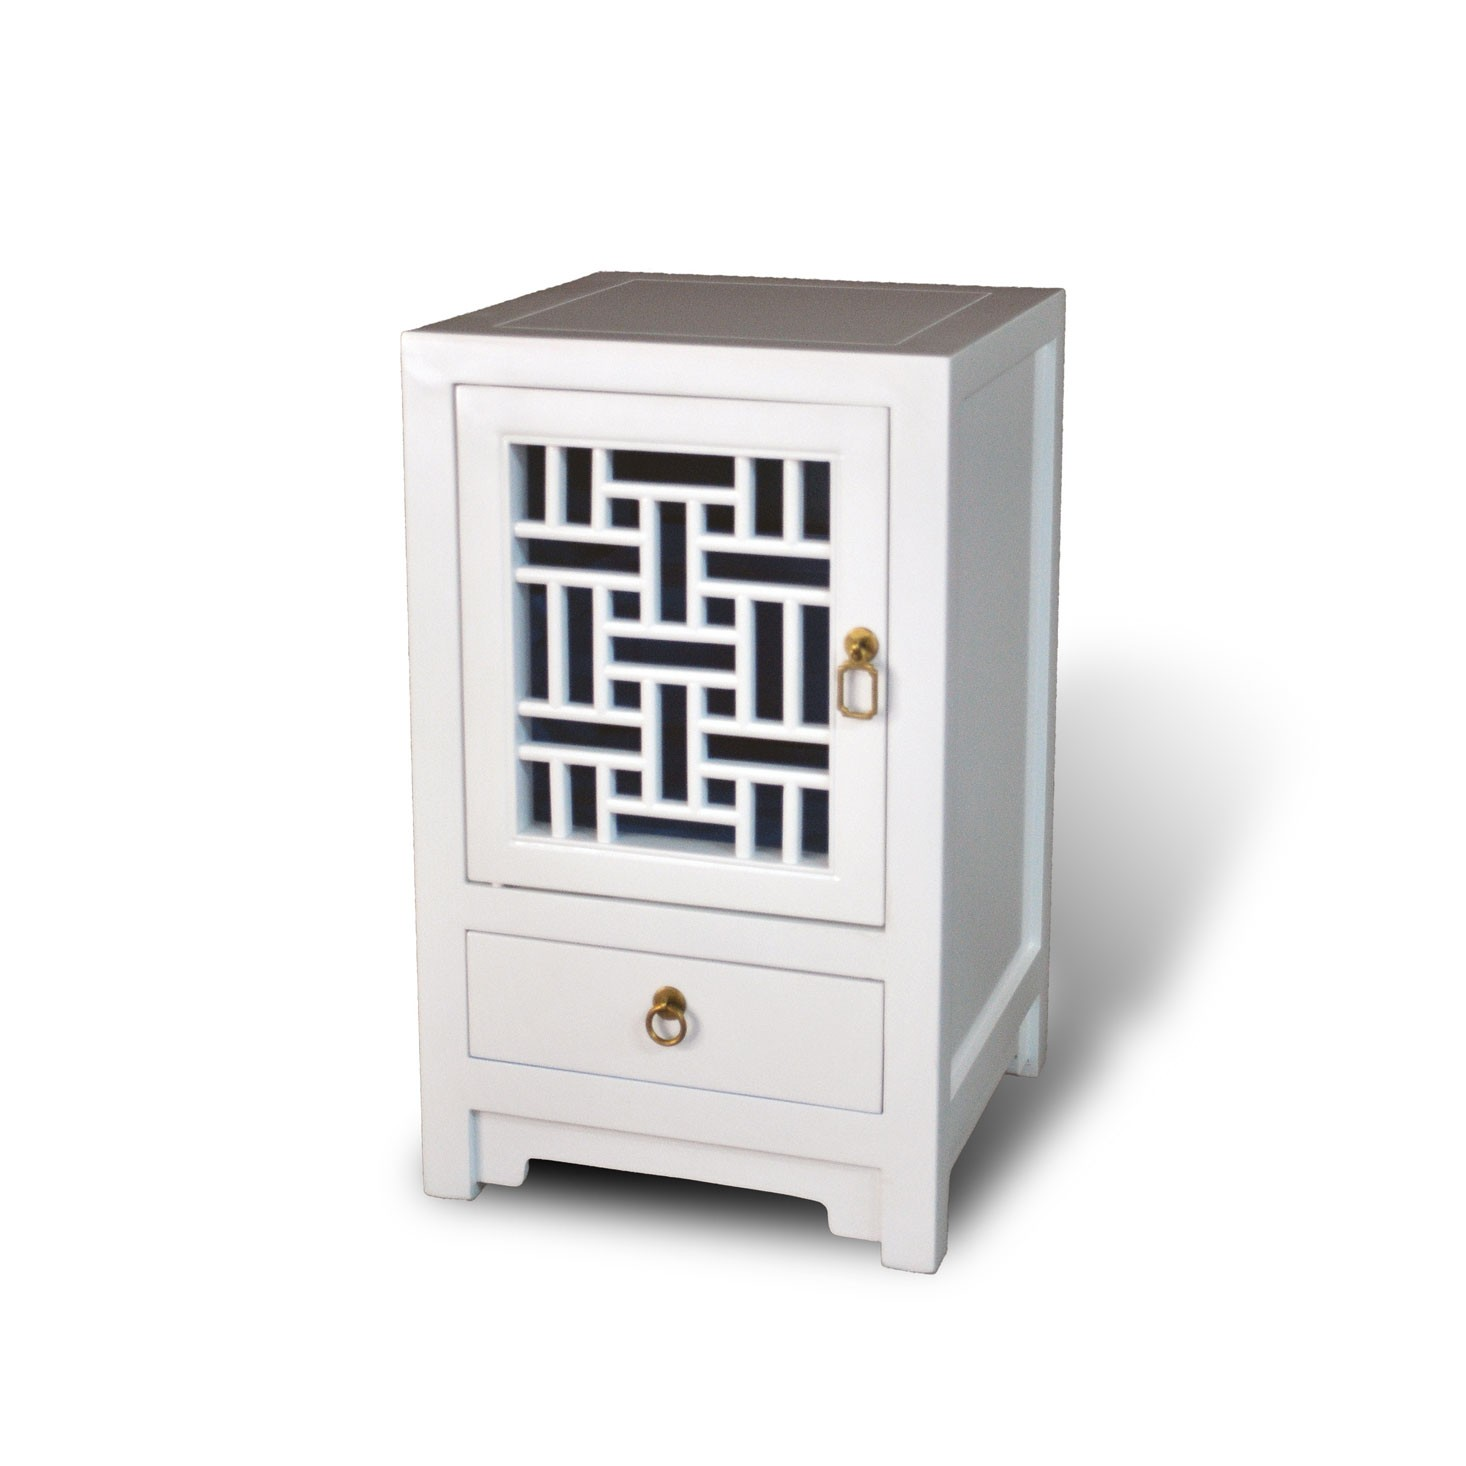 accent tables side nightstands small door cabinet with screen panel doors and cabinets uttermost bergman end table patio bistro set wall mounted drop leaf trunk furniture